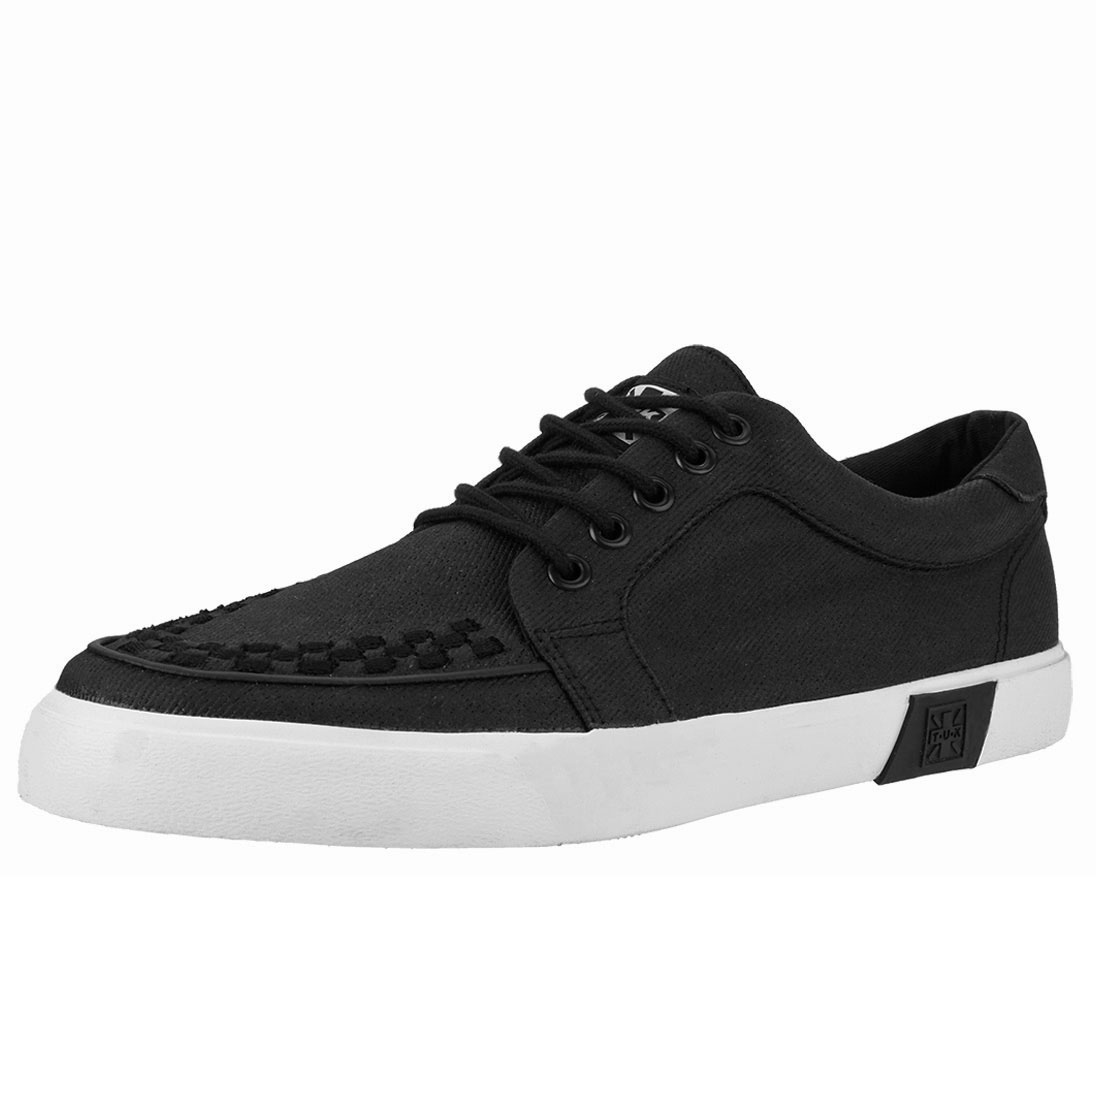 Black Waxed Twill No Ring VLK creeper style sneaker by Tred Air UK (Vegan) (Sale price!)